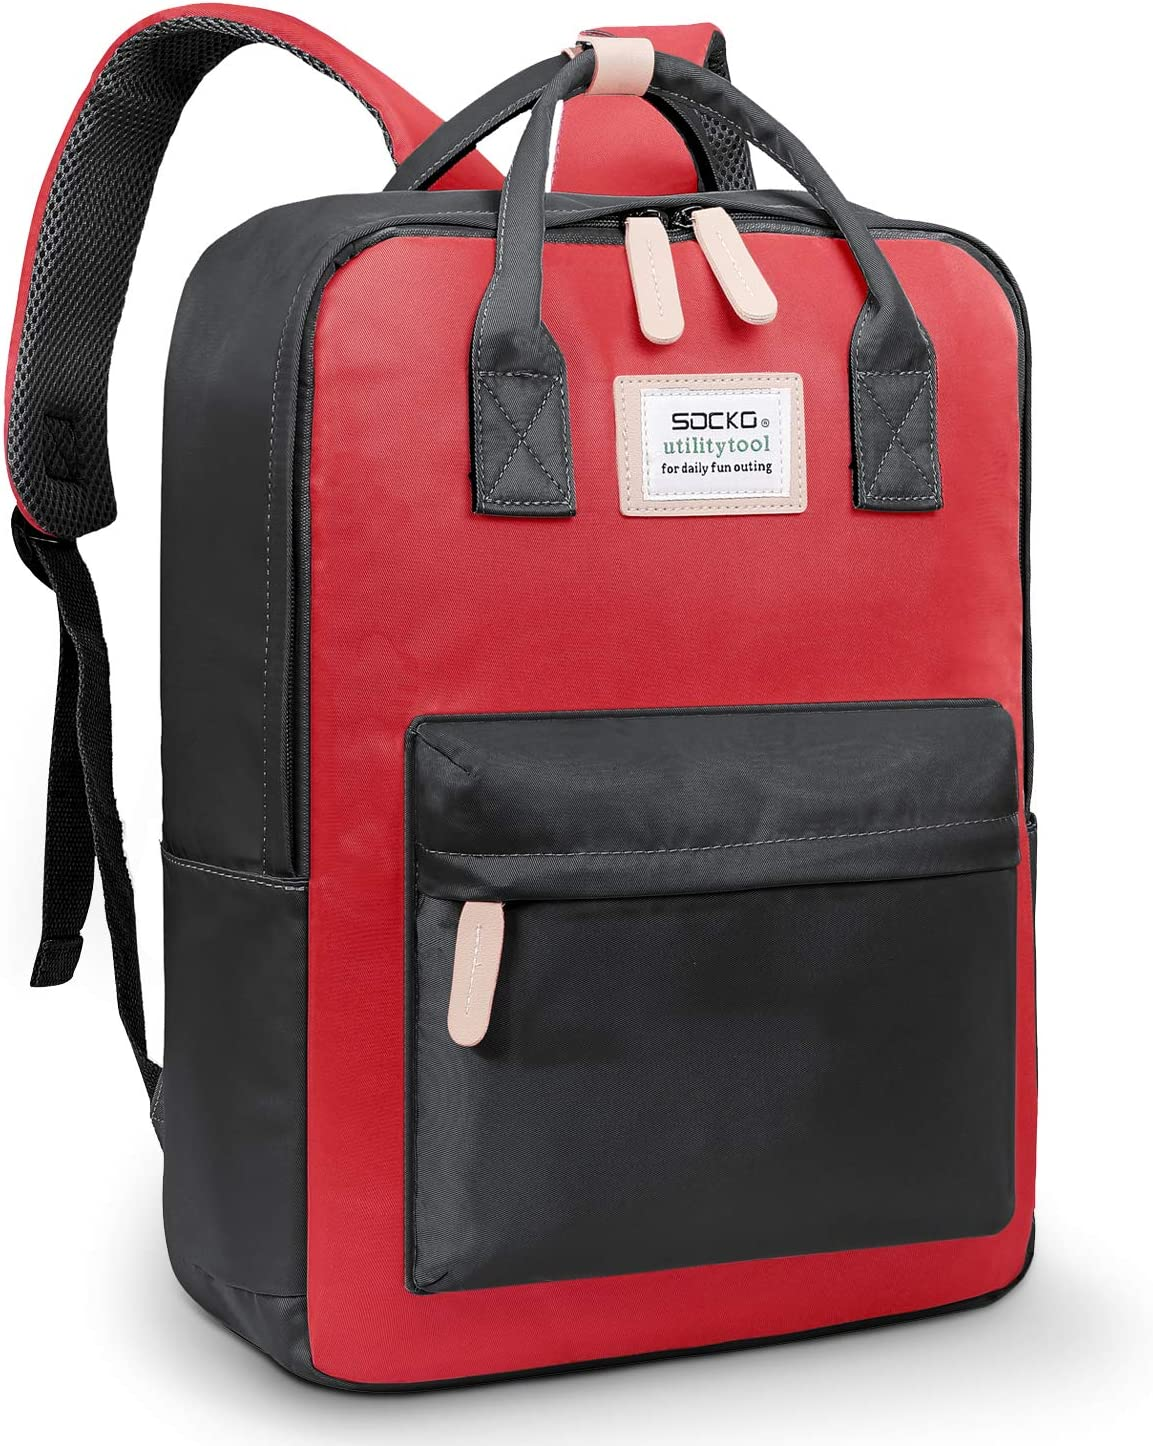 SOCKO Backpack Water Resistant College Backpack Bookbag Rucksack Light Weight Casual Daypack Multipurpose Carry On Backpack Travel Computer Bag for Men Women Fits up to 15-15.6 Inches Laptop,Black-red